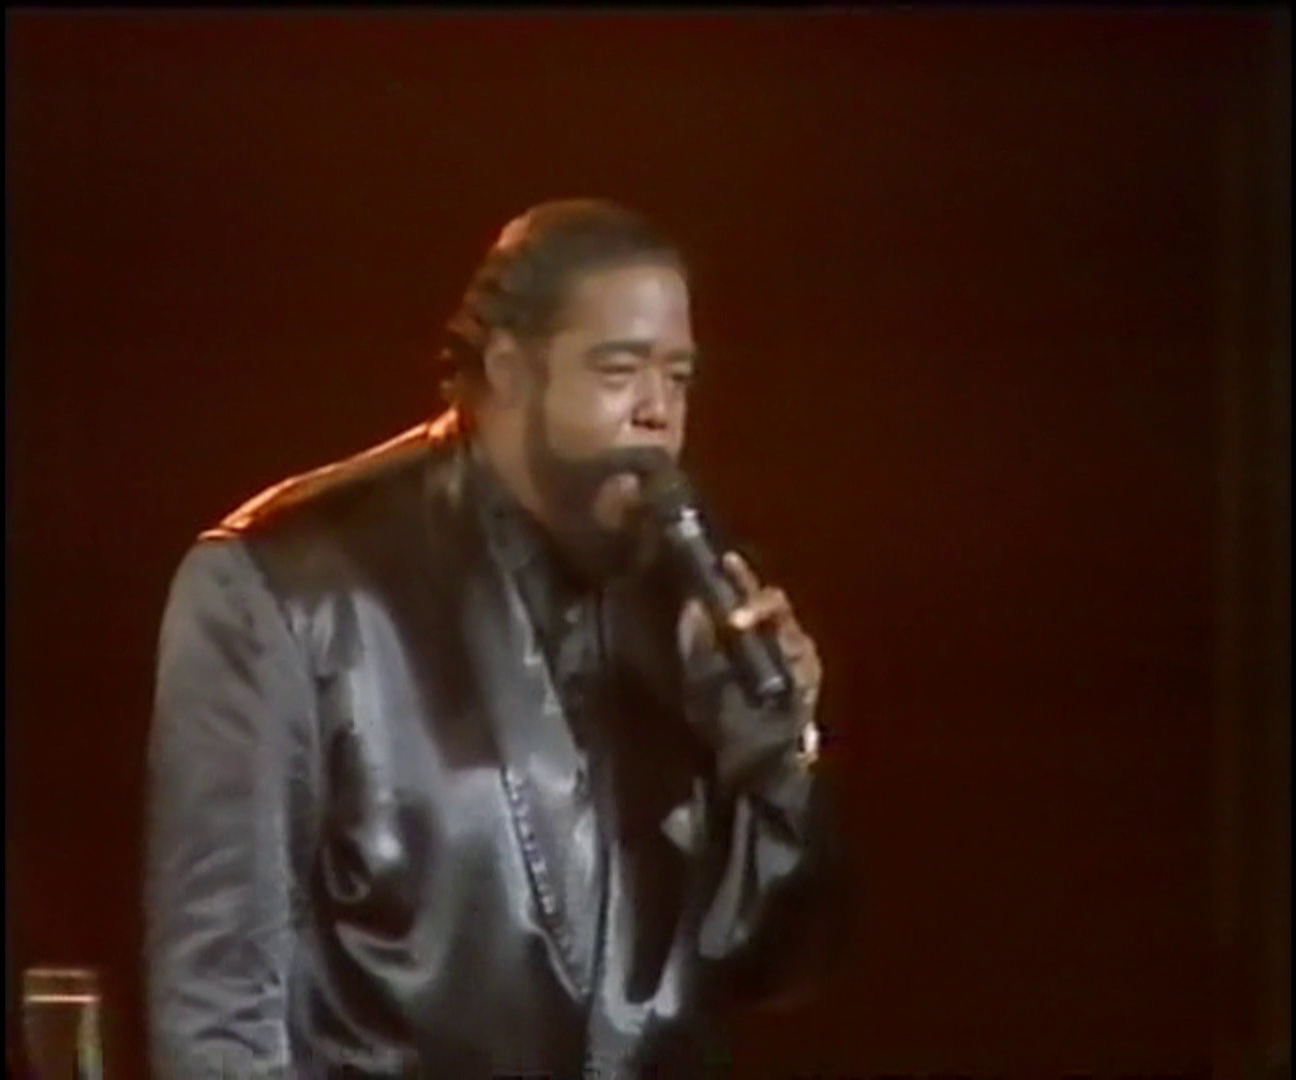 2004 Barry White - The Man And His Music featuring Love Unlimited (2012) [BDRip 1080p] 0